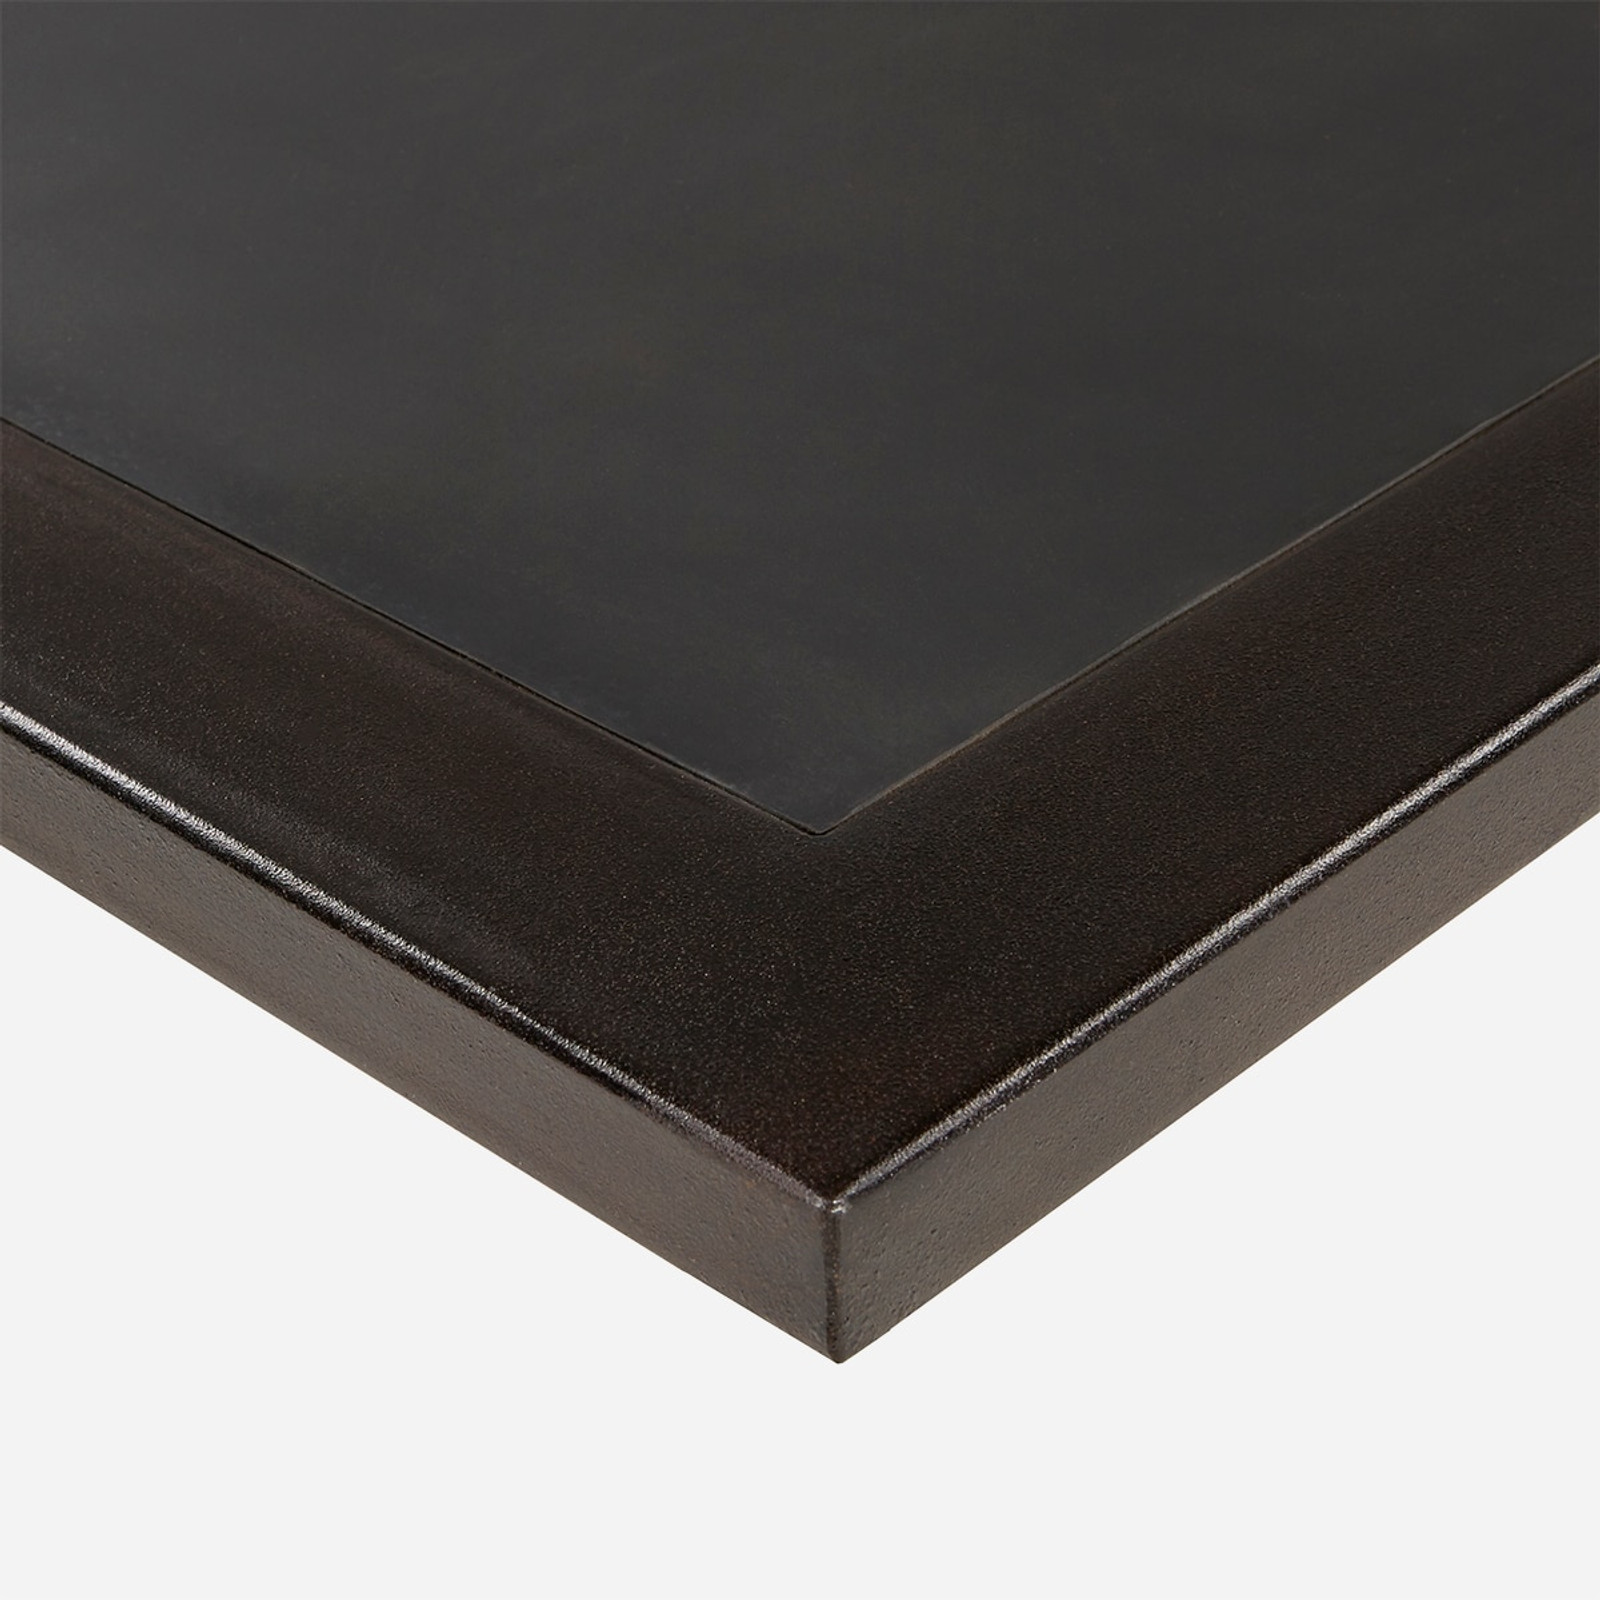 Charly Table with Rubber